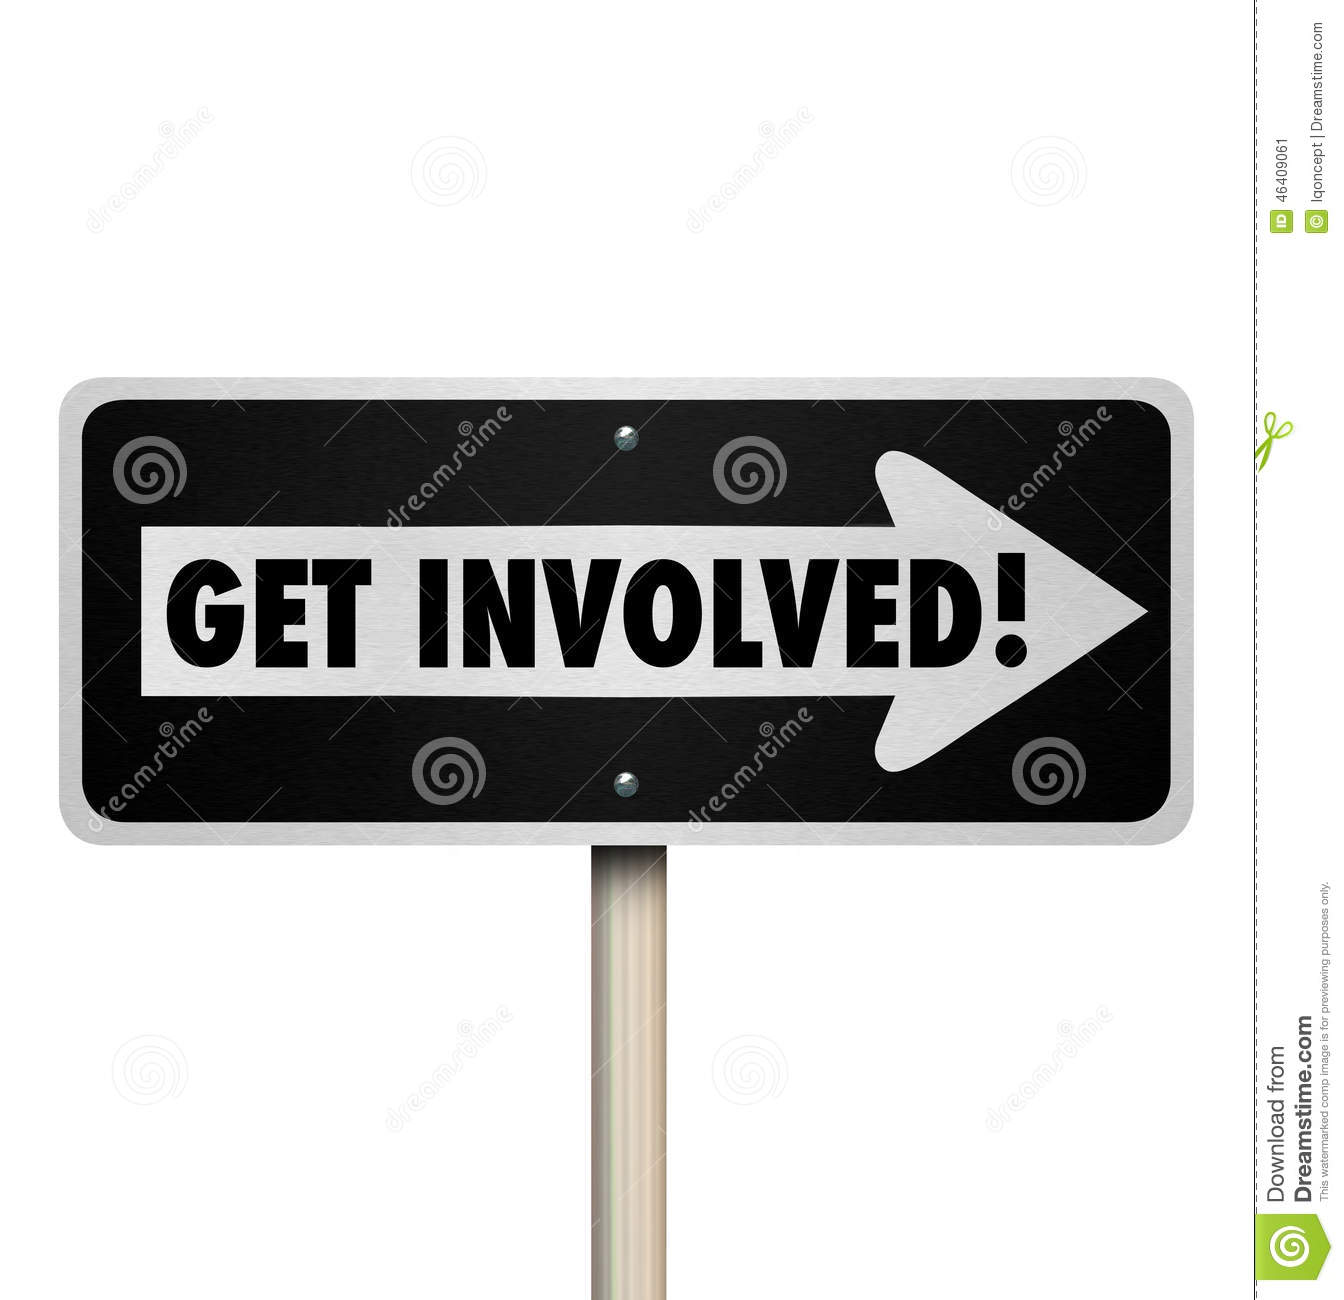 ... Participate Join Engagement Group Stock Illustration - Image: 46409061